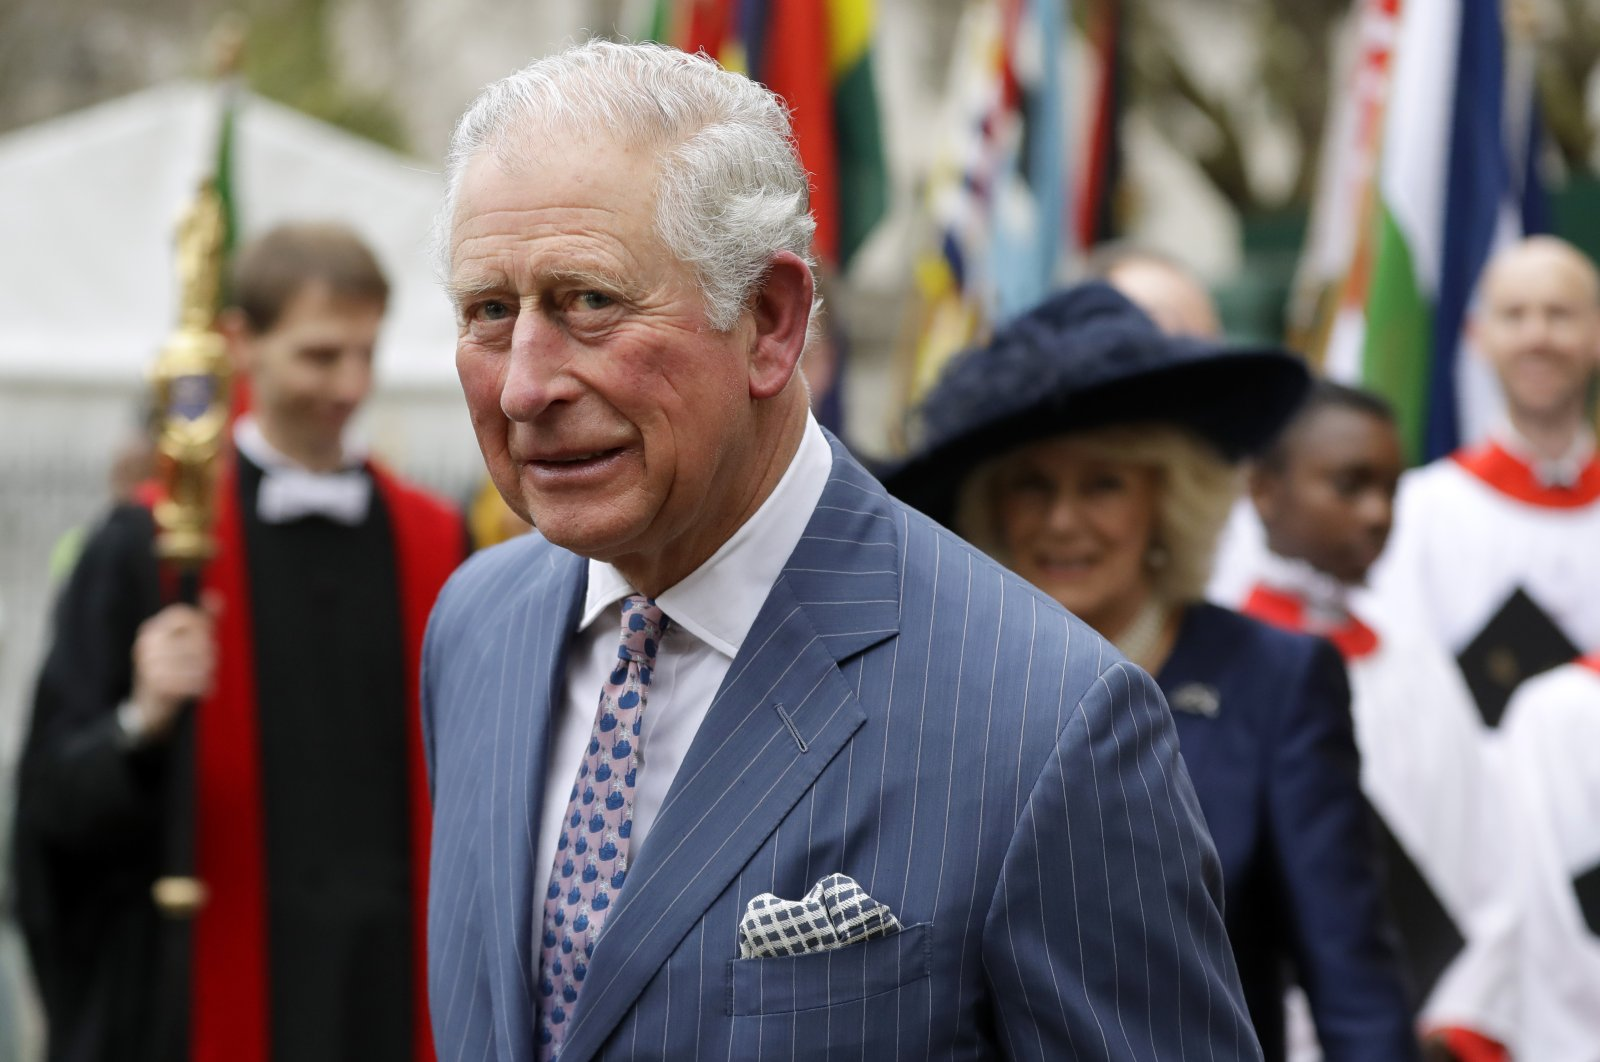 Britain's Prince Charles leaves after attending the annual Commonwealth Day service at Westminster Abbey, London, Monday, March 9, 2020. (AP Photo)